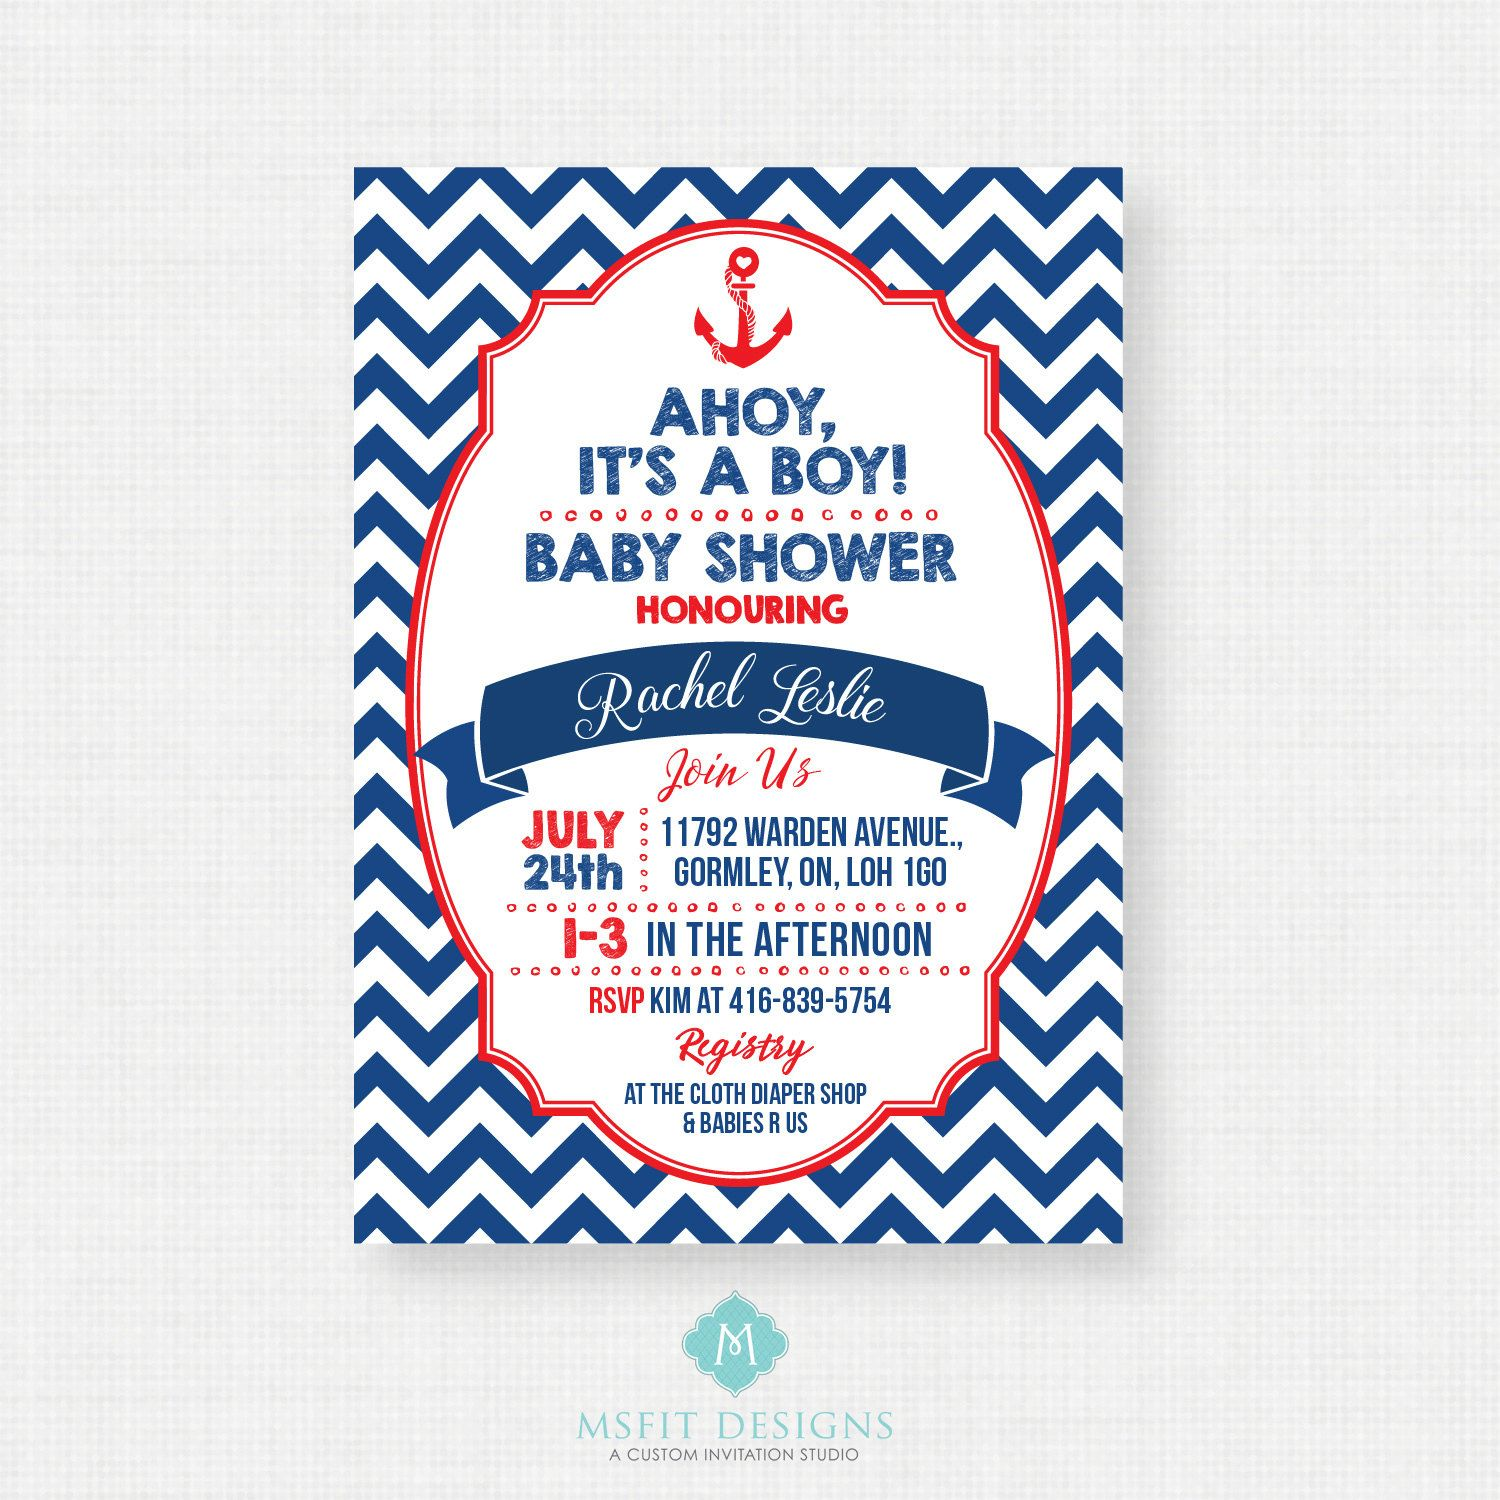 Nautical Baby Shower Invitation Ahoy Its A Boy Navy and Red